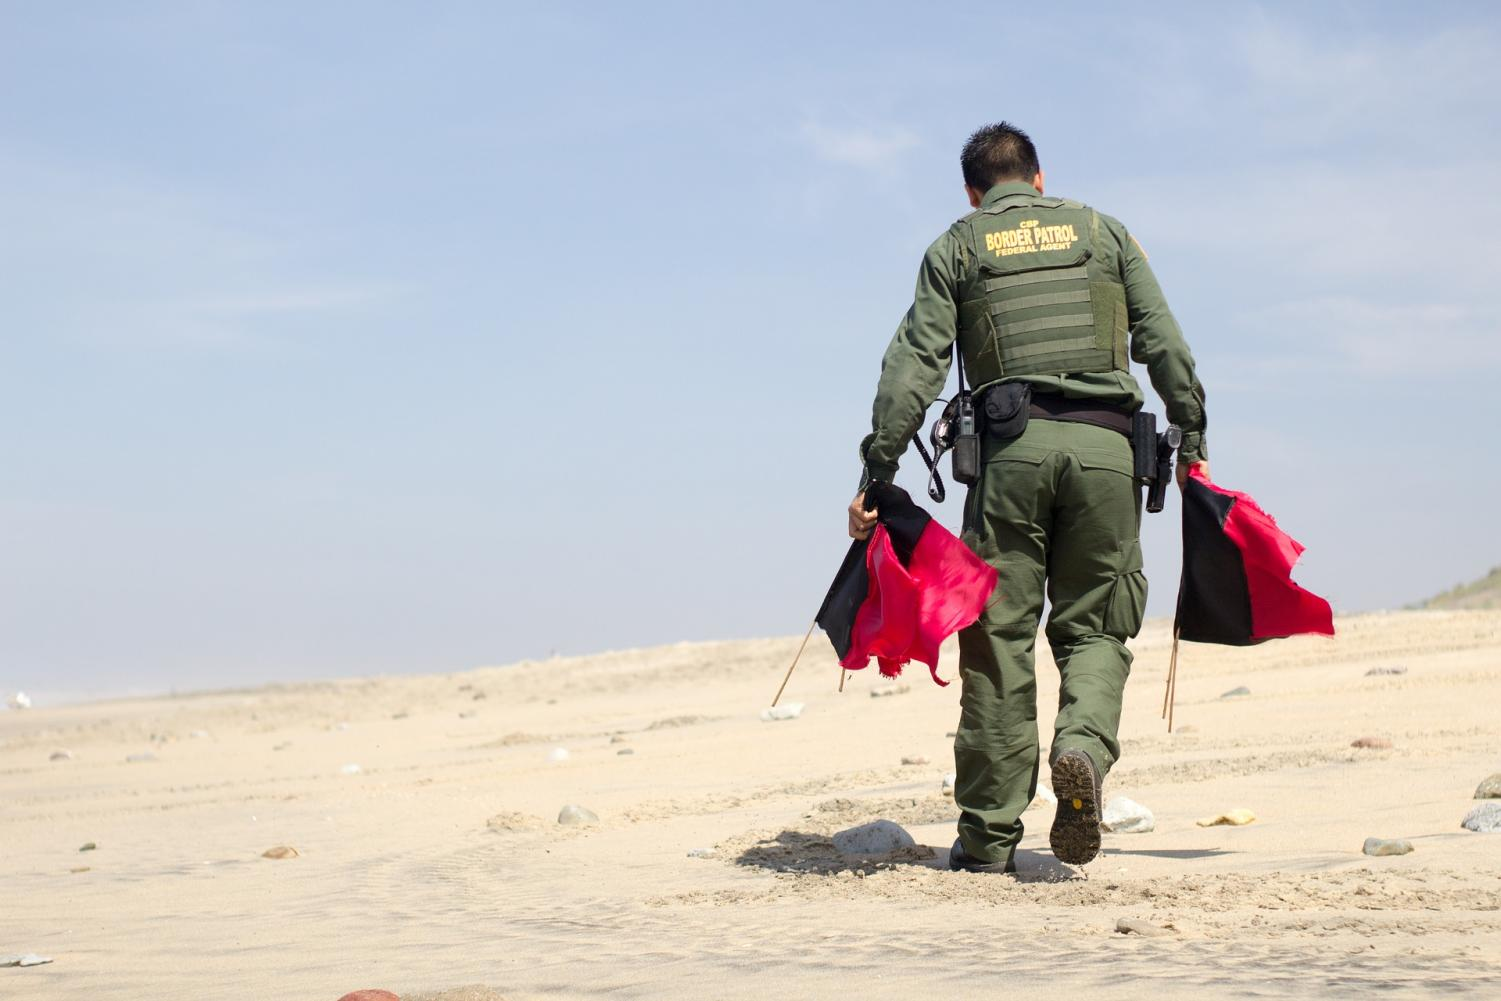 A US border patrol agent marking the border in a barren desert with red flags.